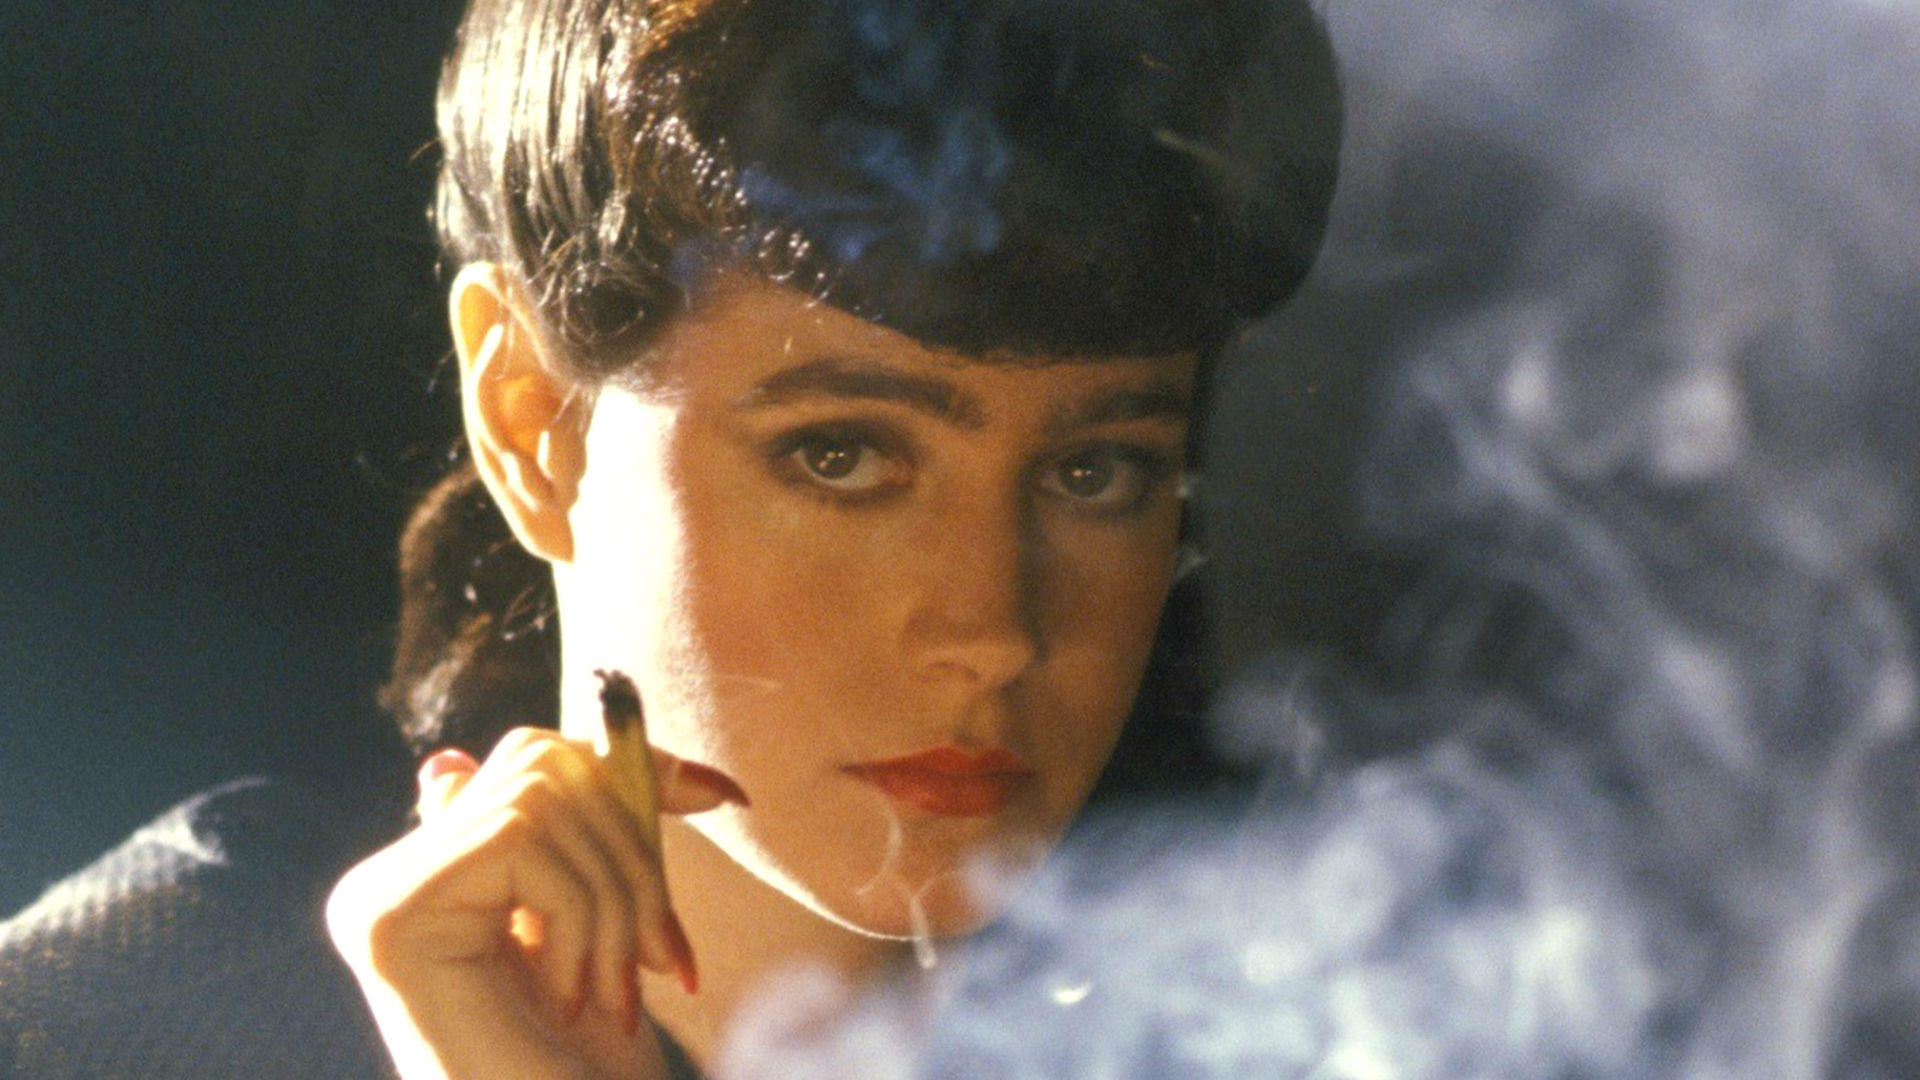 Sean Young as Rachael in Blade Runner